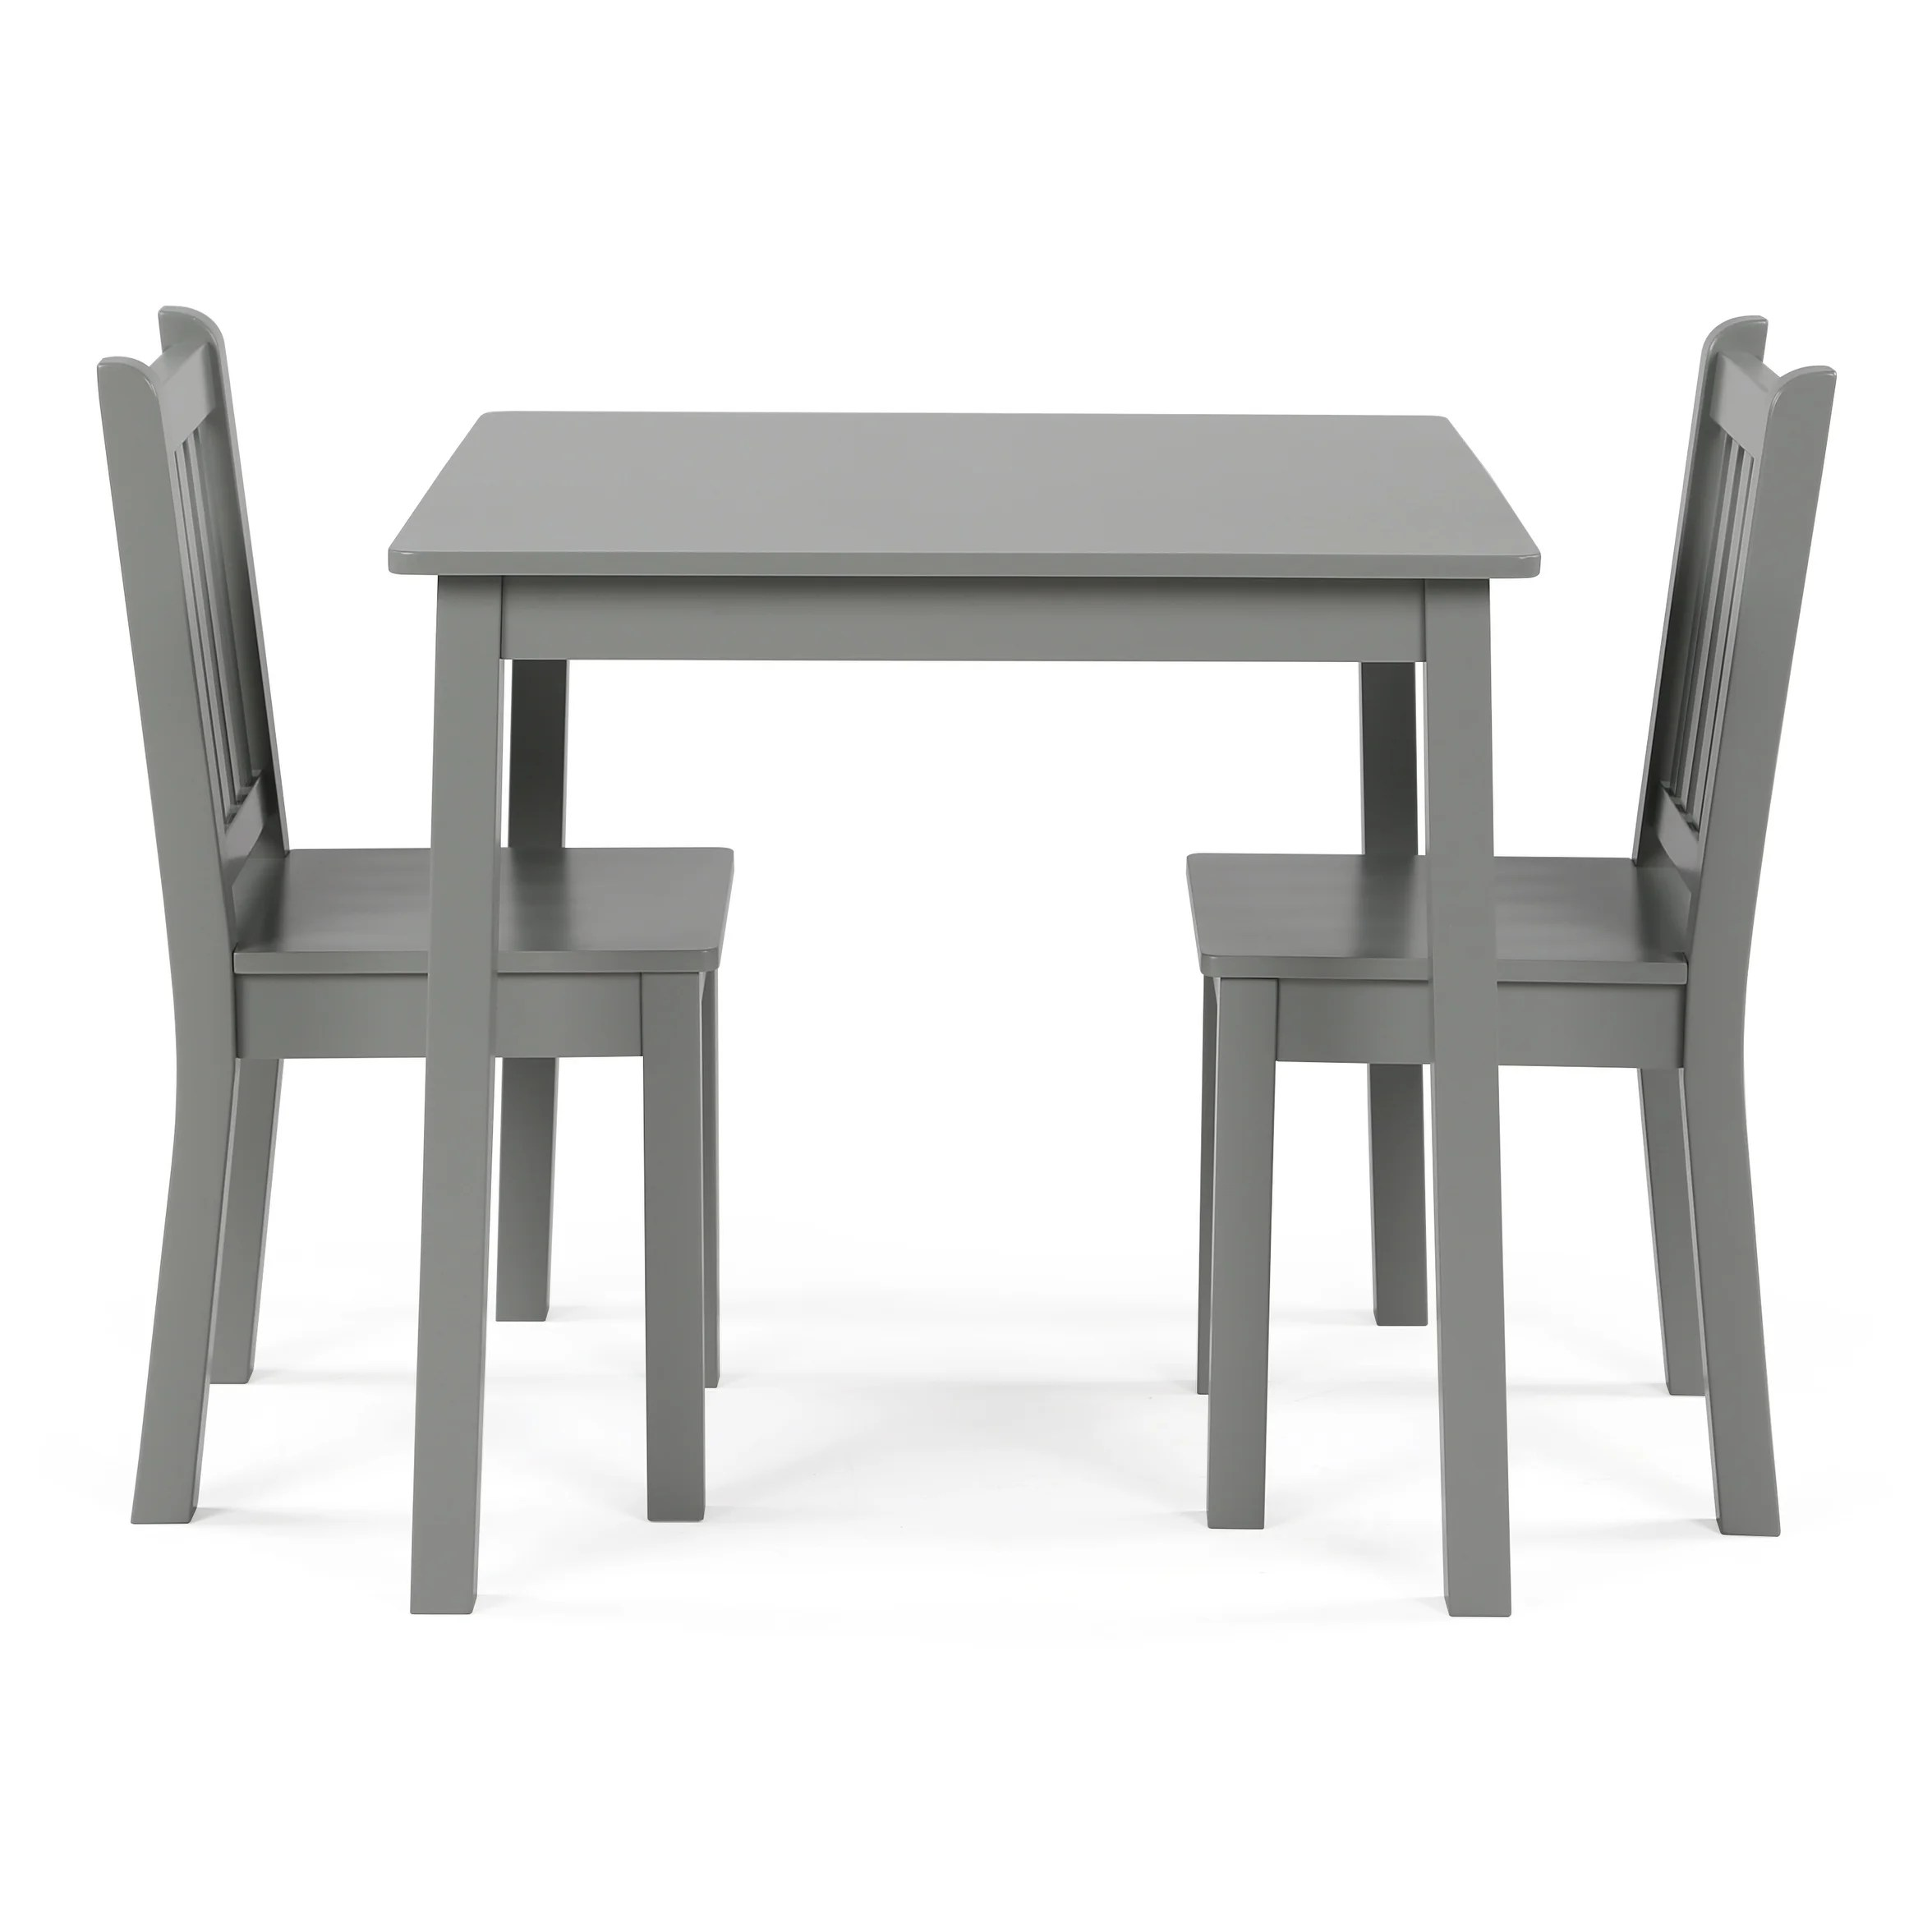 Childrens Table And Chair Set Wood Kids Table Chairs 3 Piece Set Grey